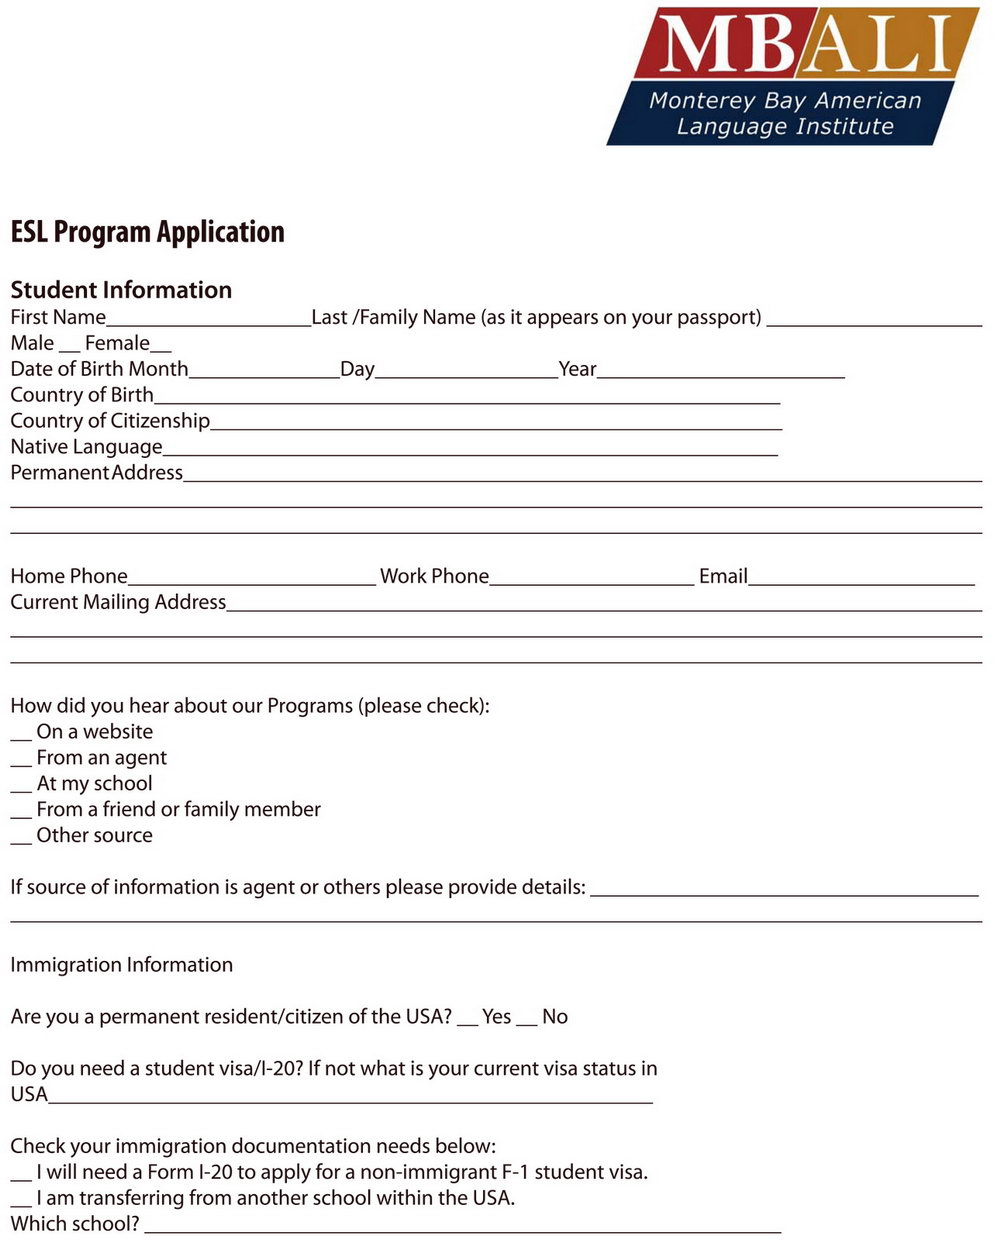 Ssi Disability Application Form